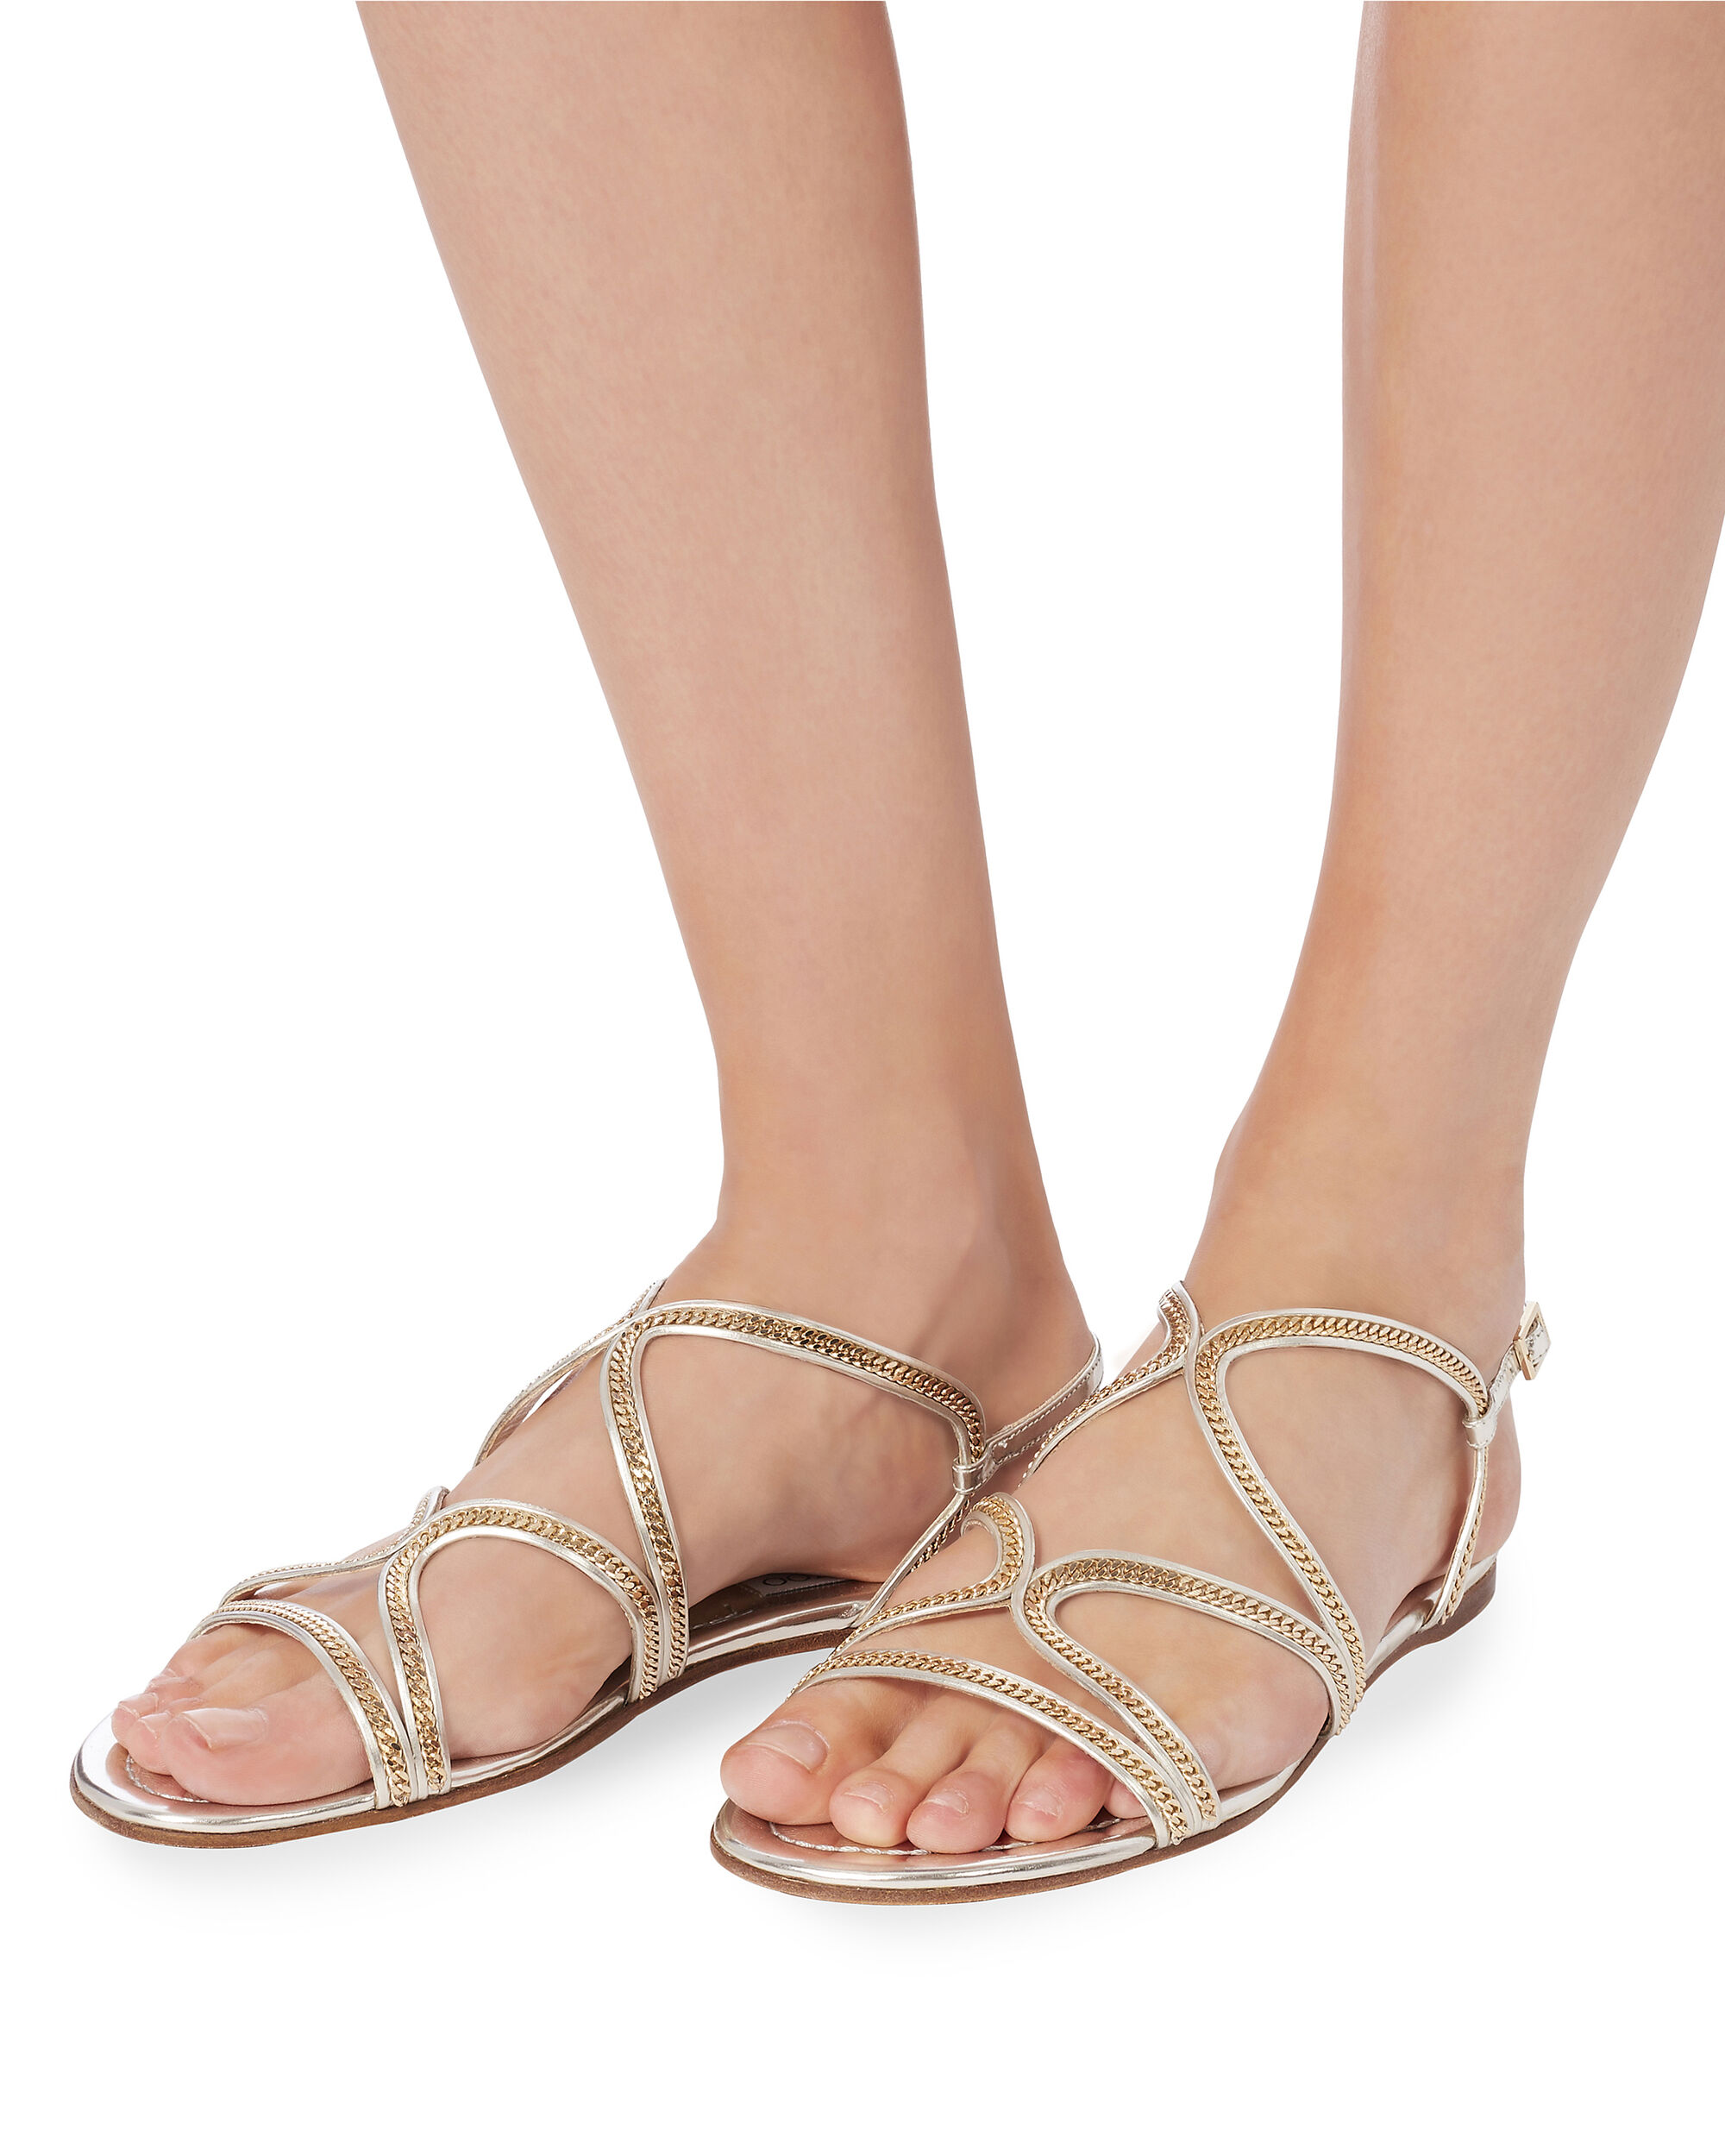 Nickel Strappy Flat Sandals, GOLD, hi-res